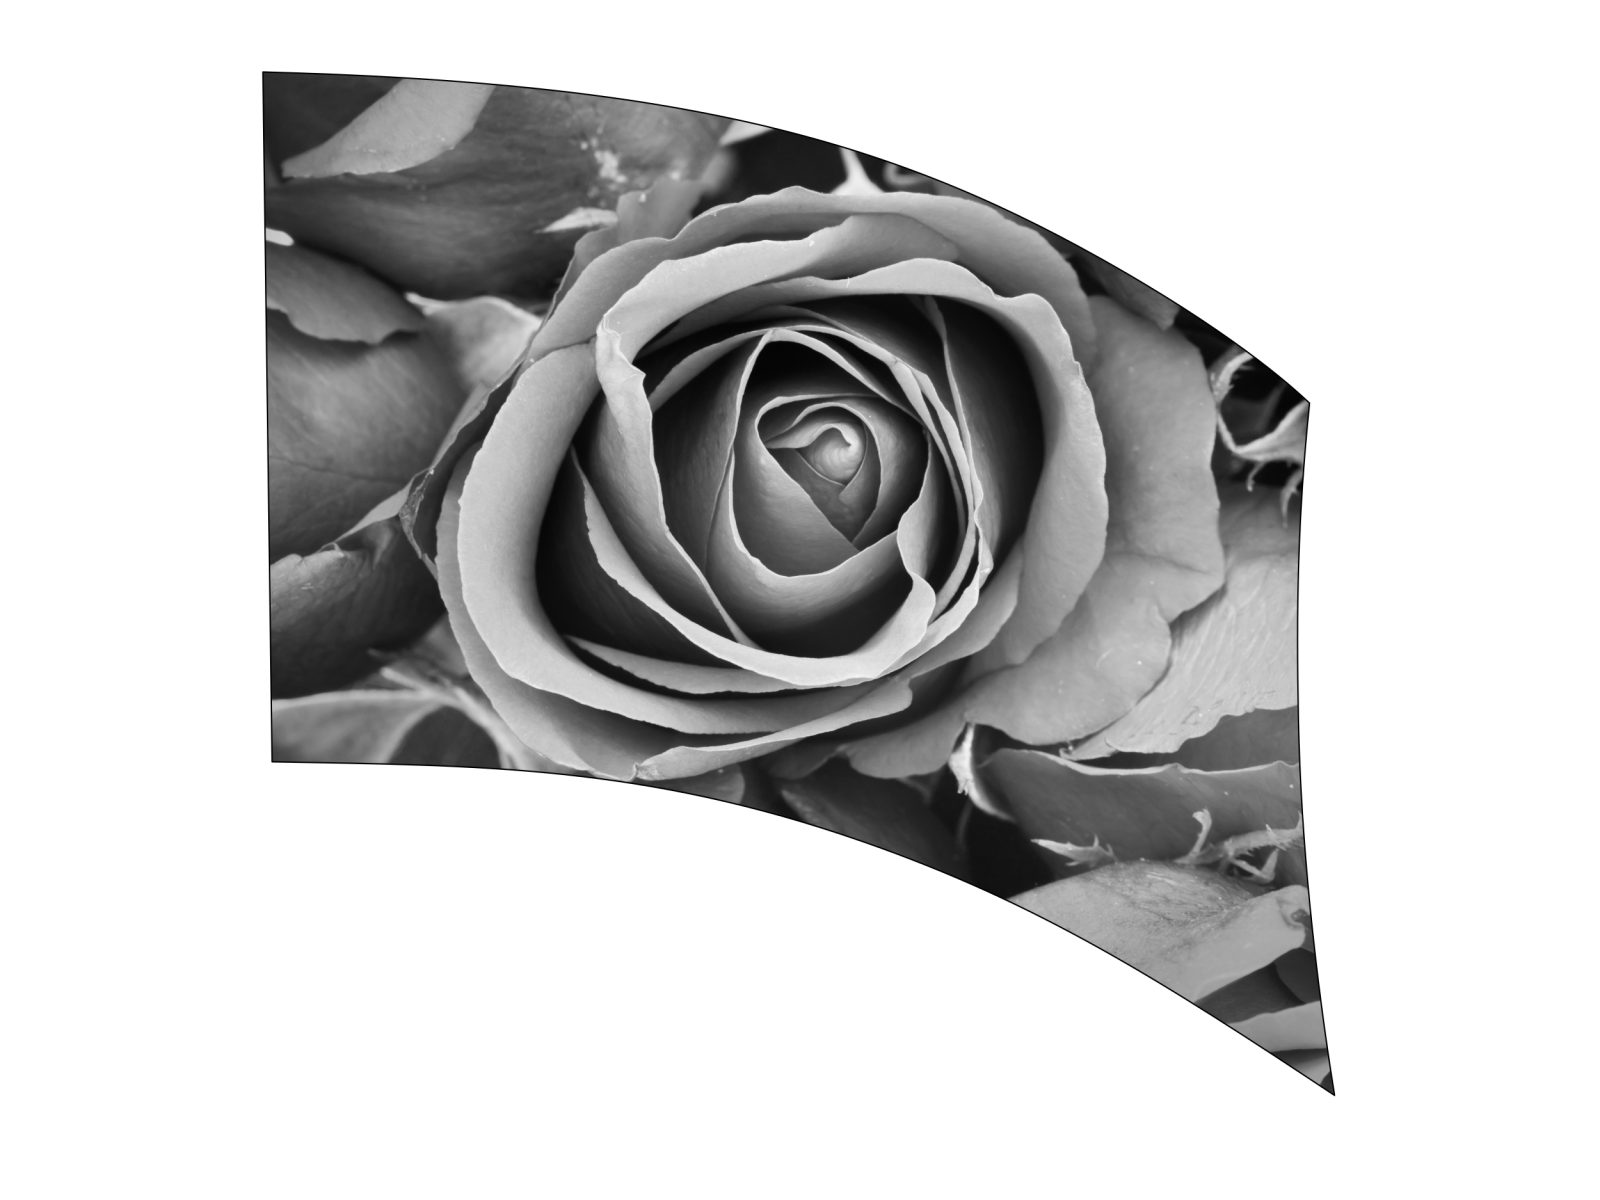 070204s - 36x52 Standard Black and White Rose